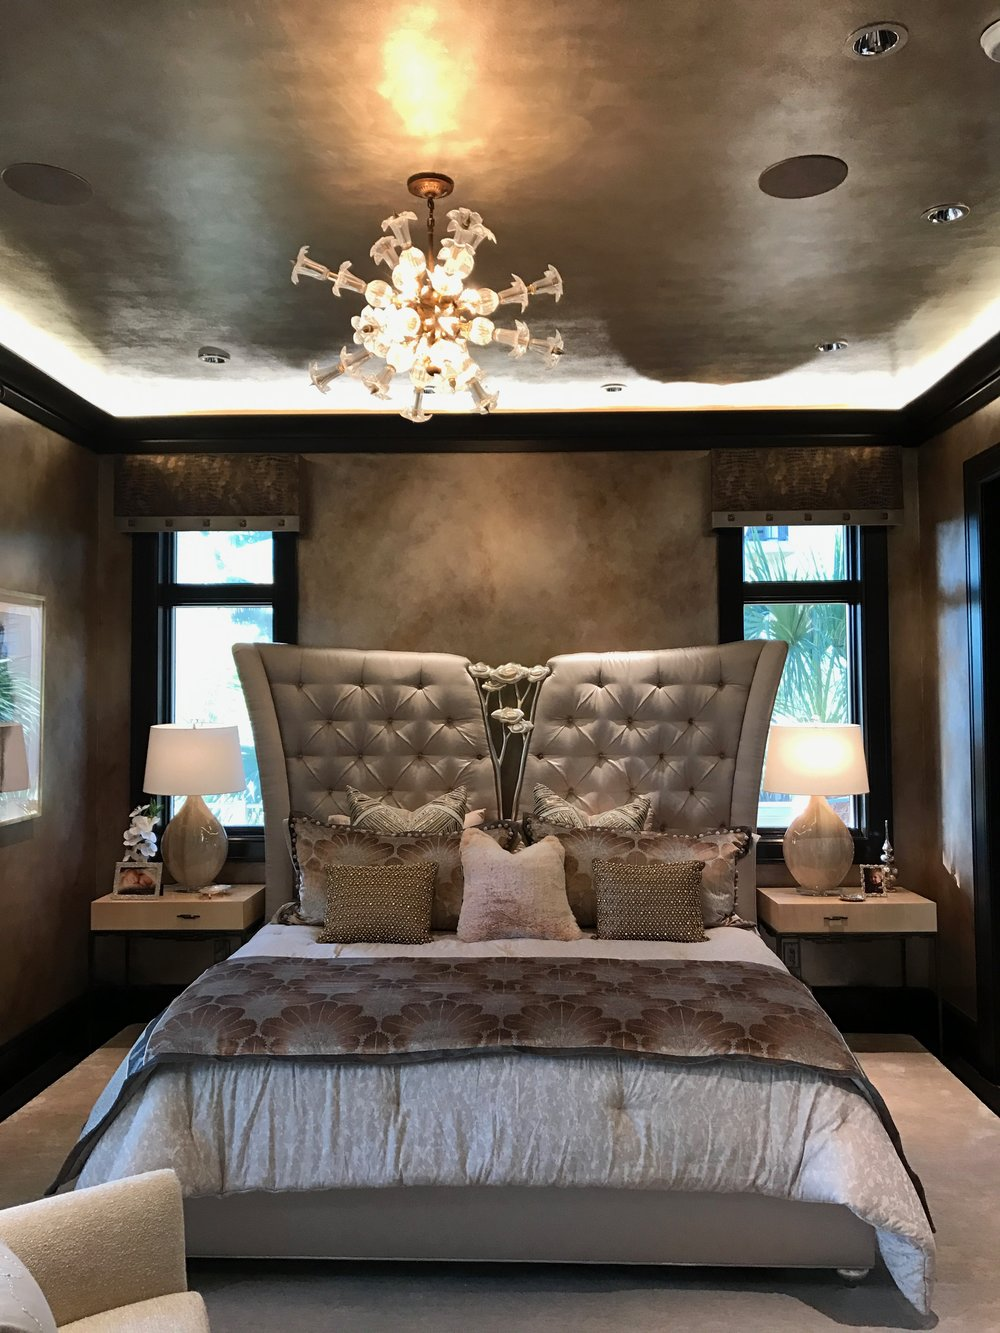 Glazed Silver Ceiling and Oil-Rubbed Walls